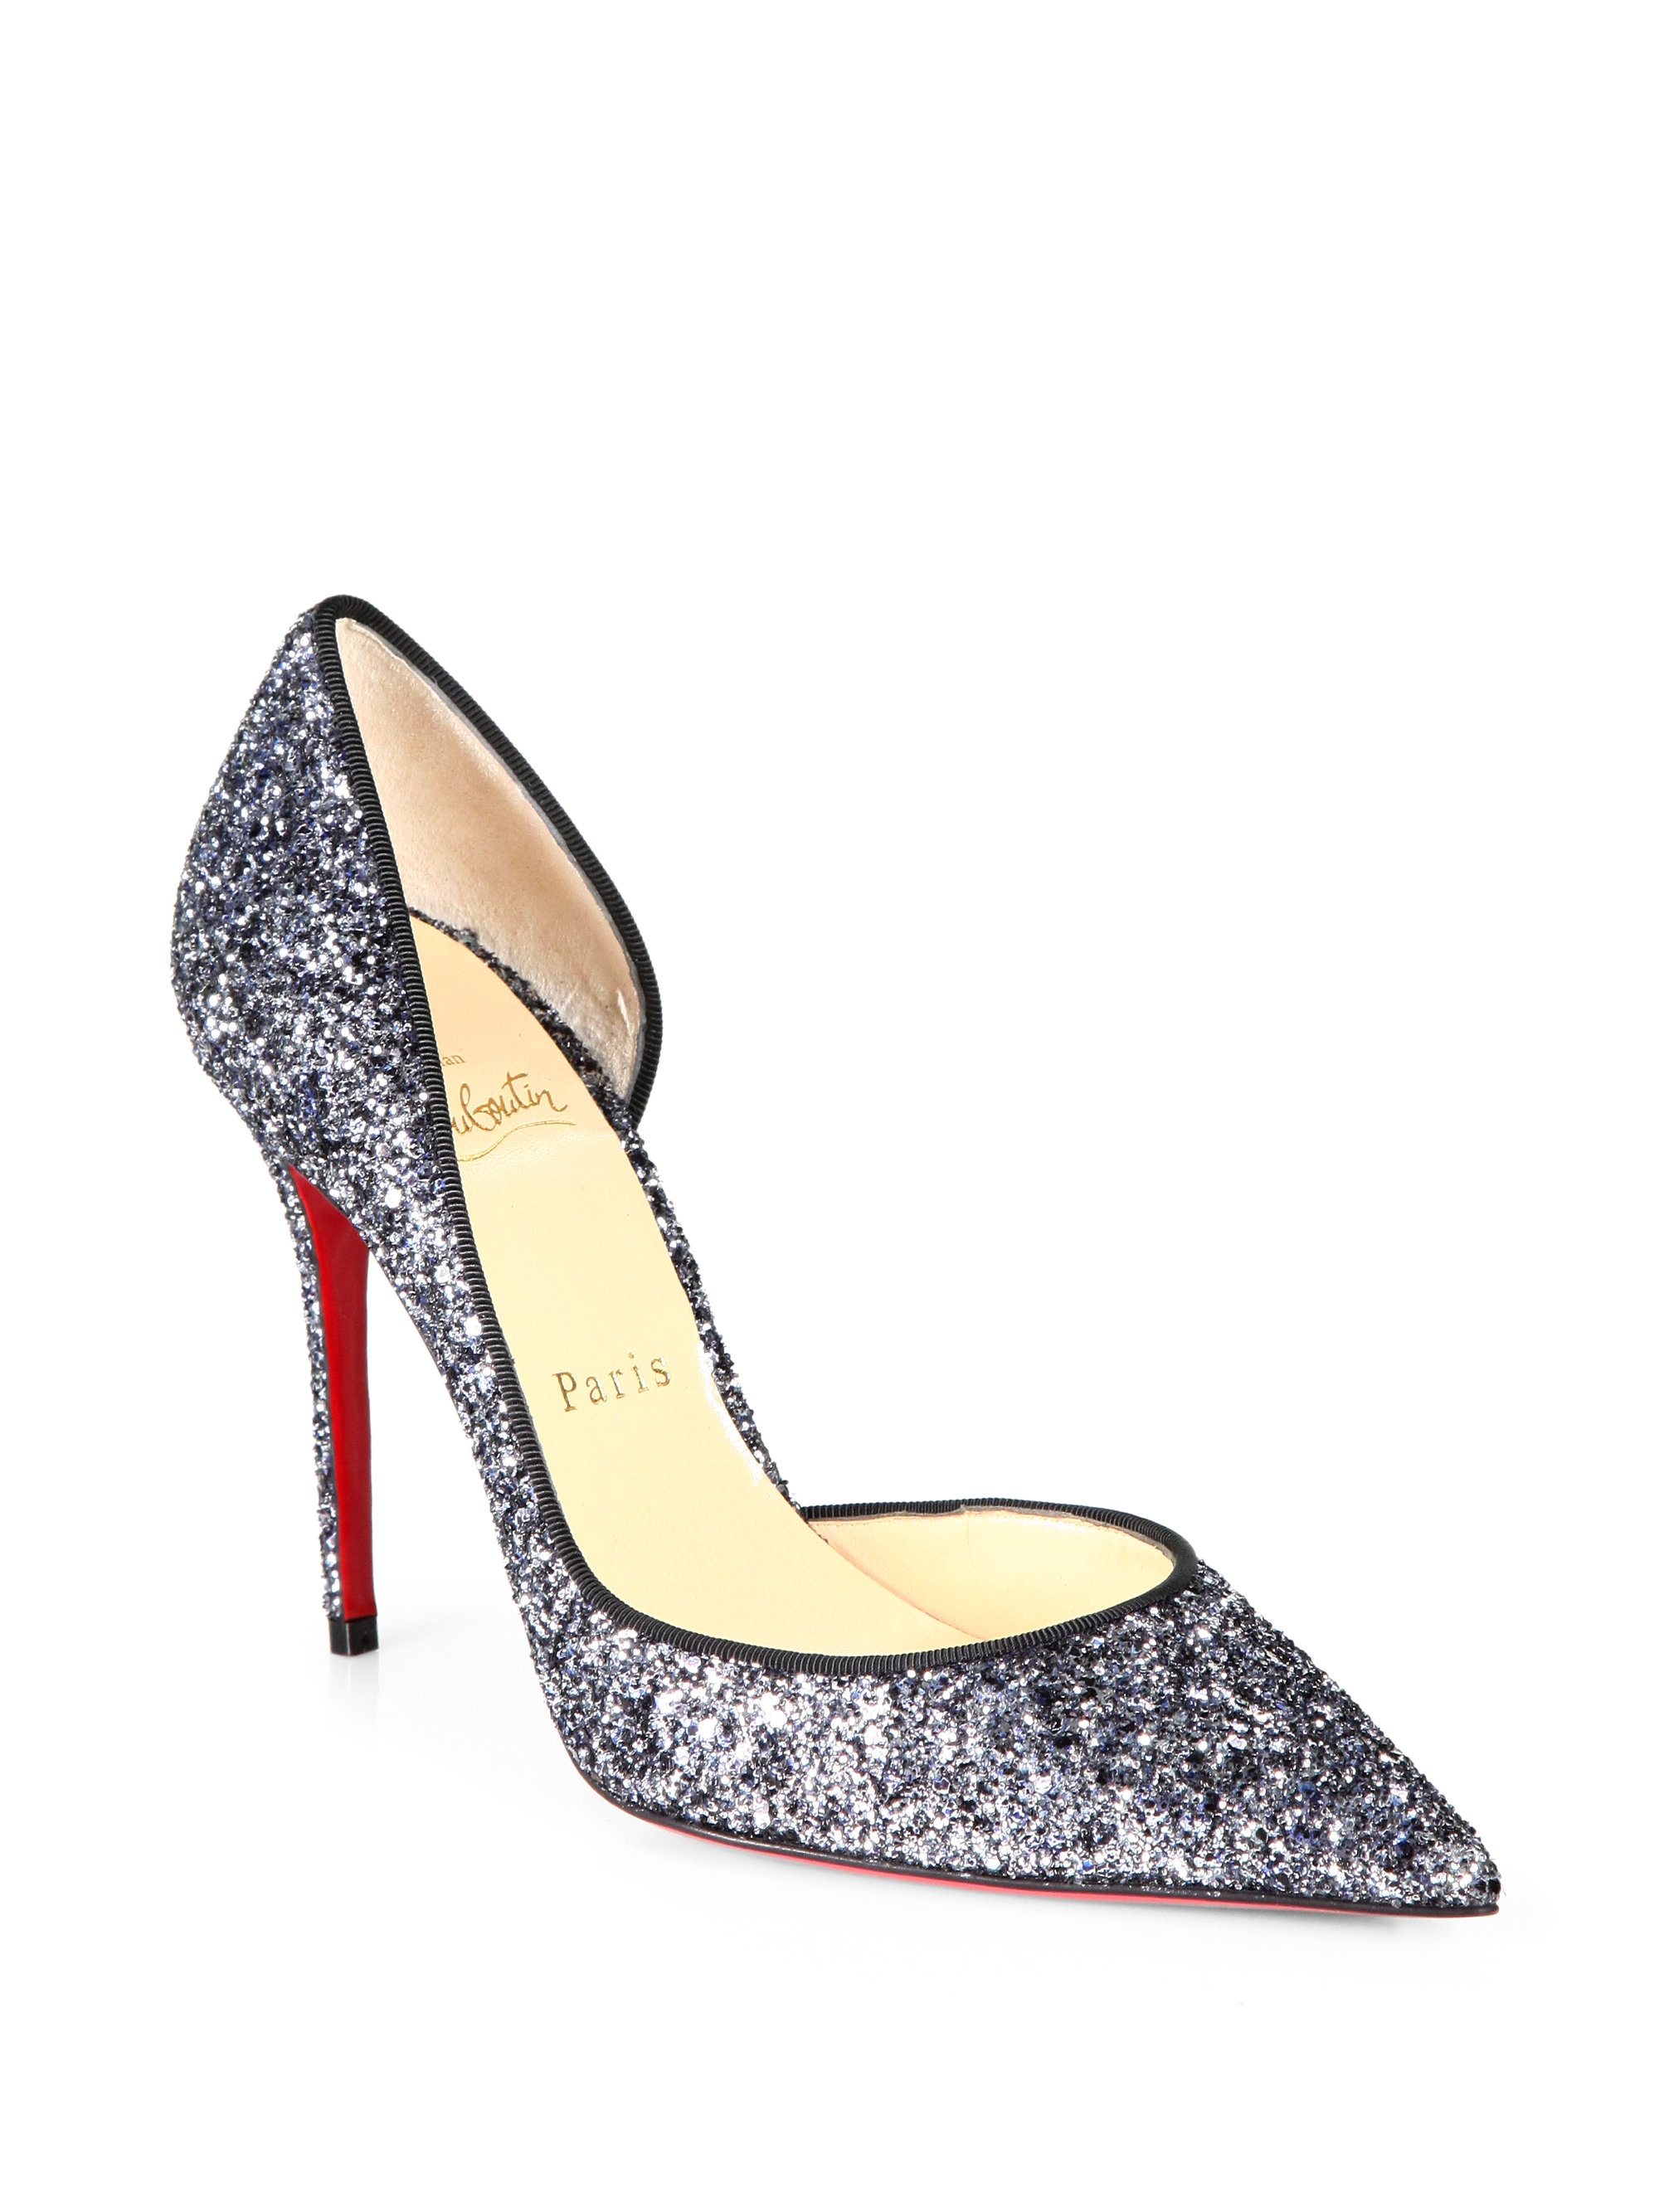 40796c551860 Gallery. Previously sold at  Saks Fifth Avenue · Women s Christian  Louboutin Iriza